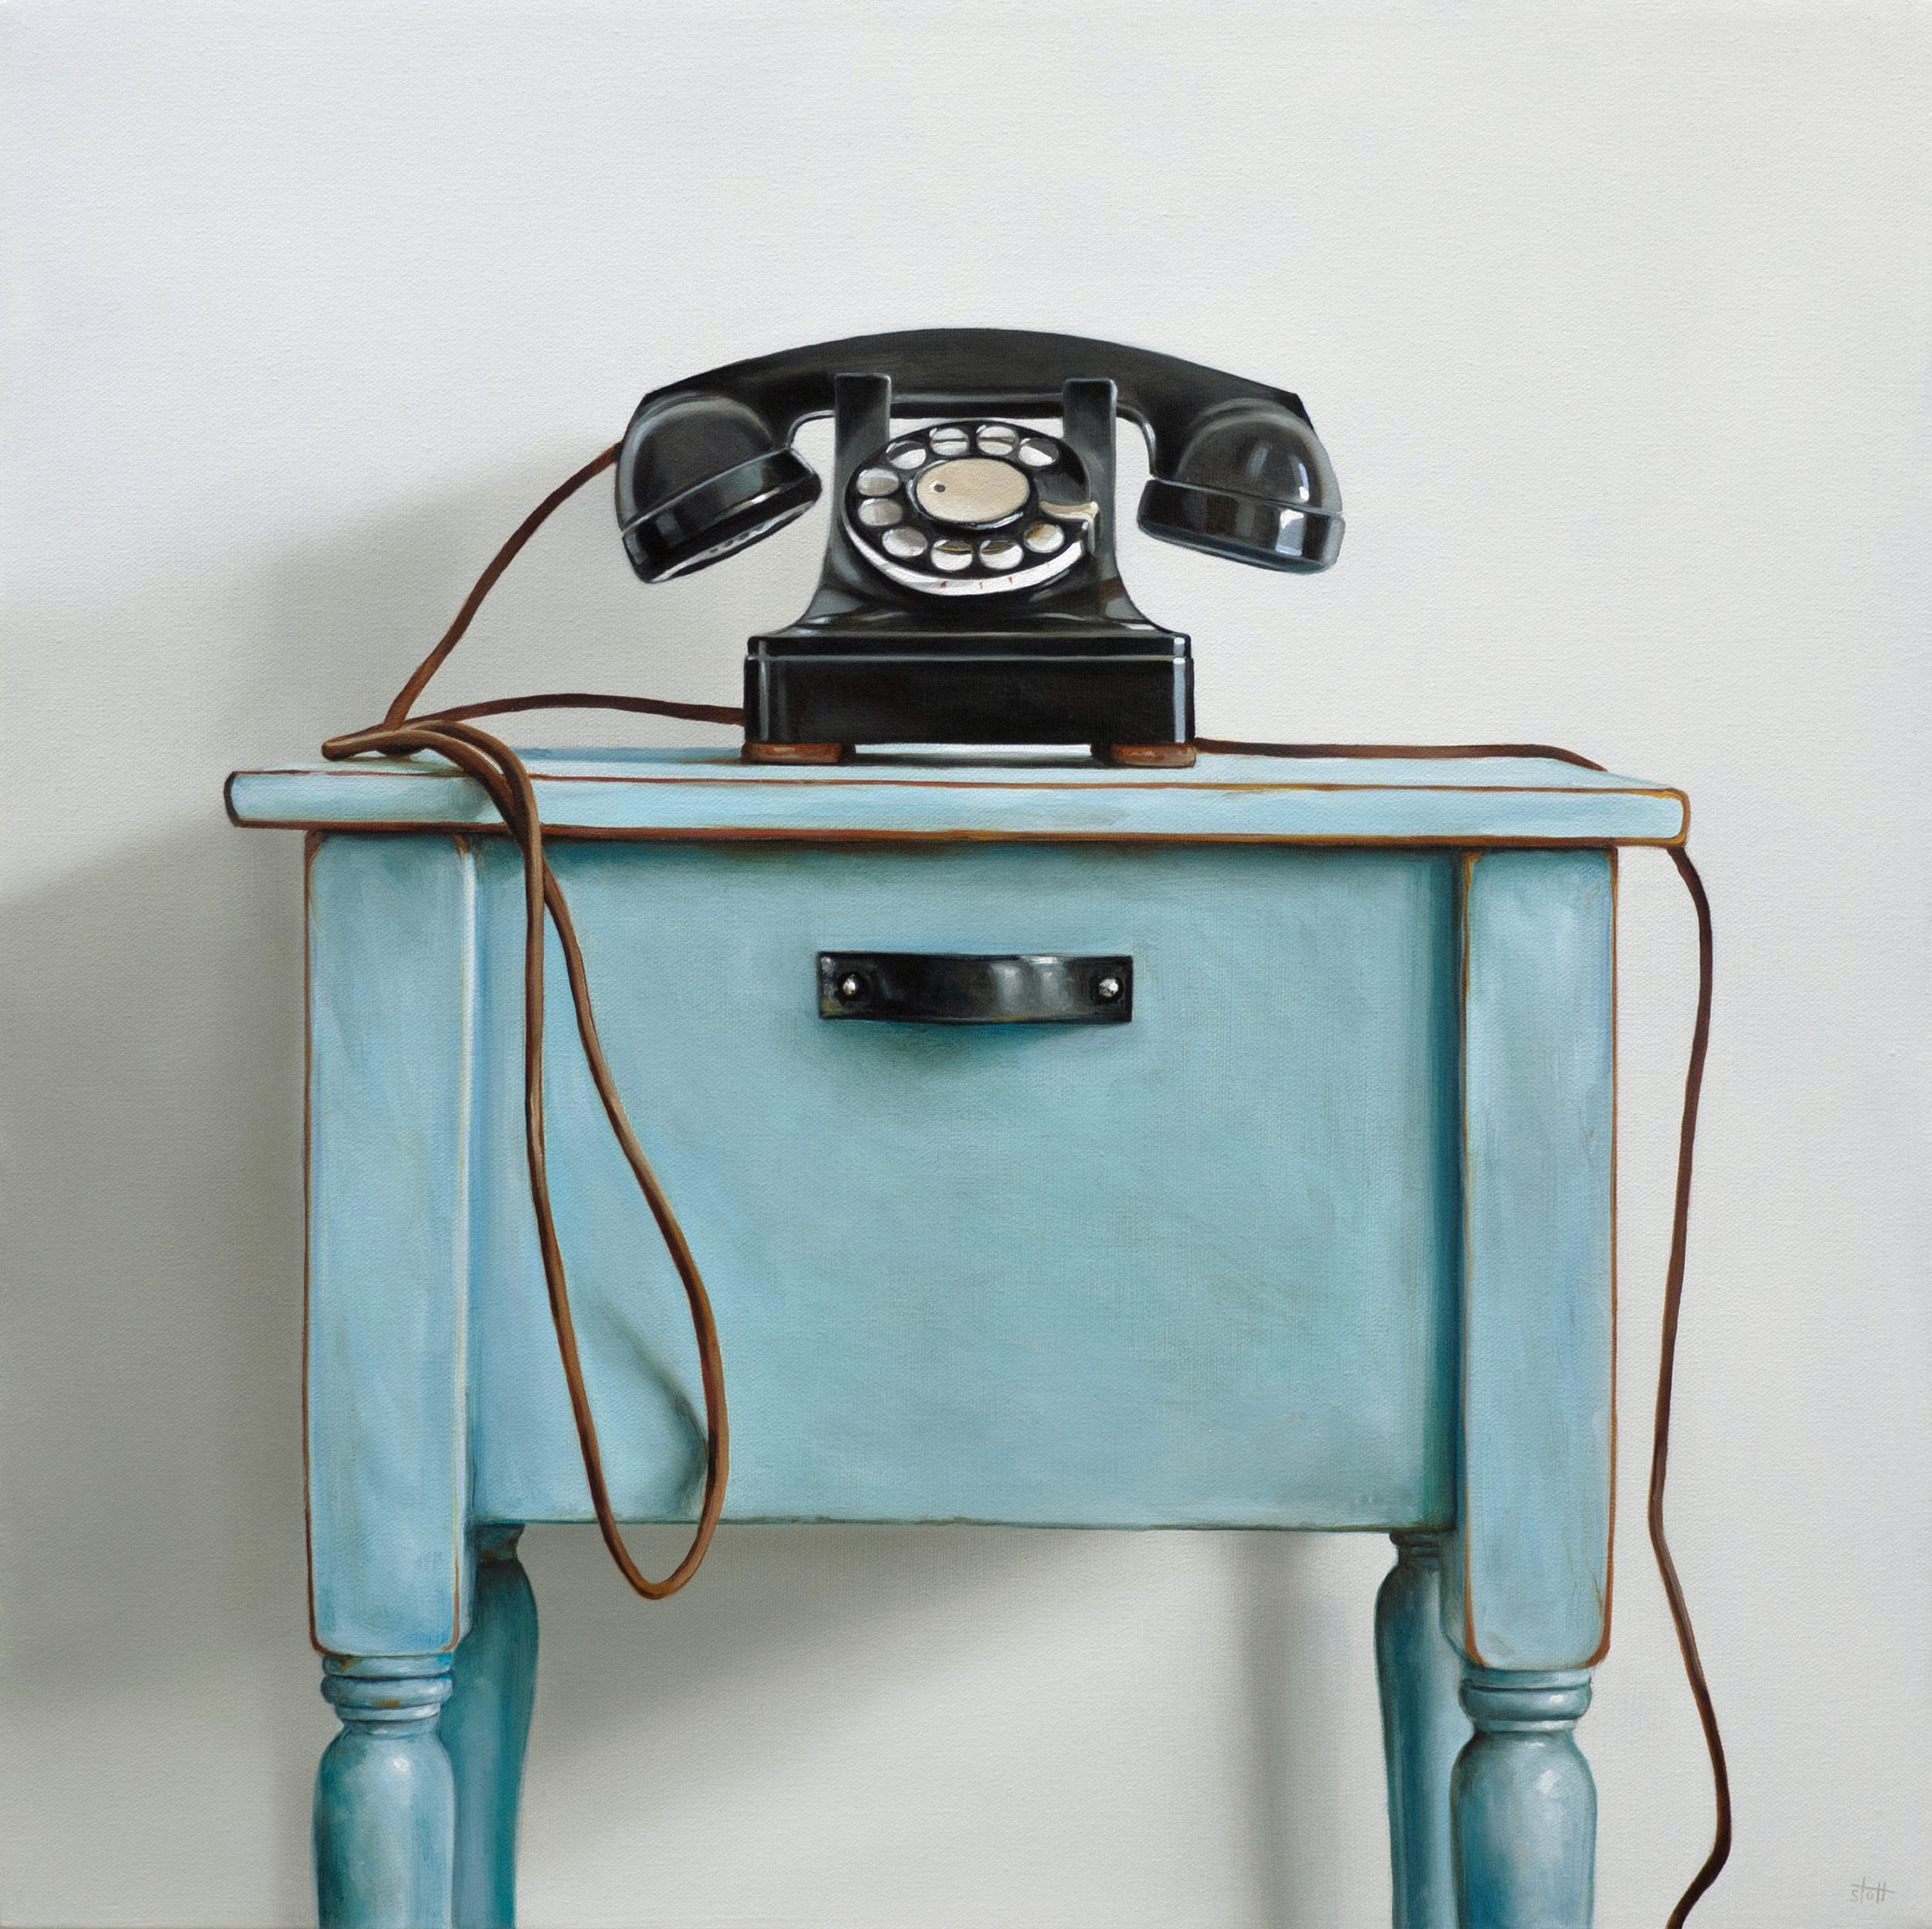 Rotary Telephone & Blue Table by Christopher Stott